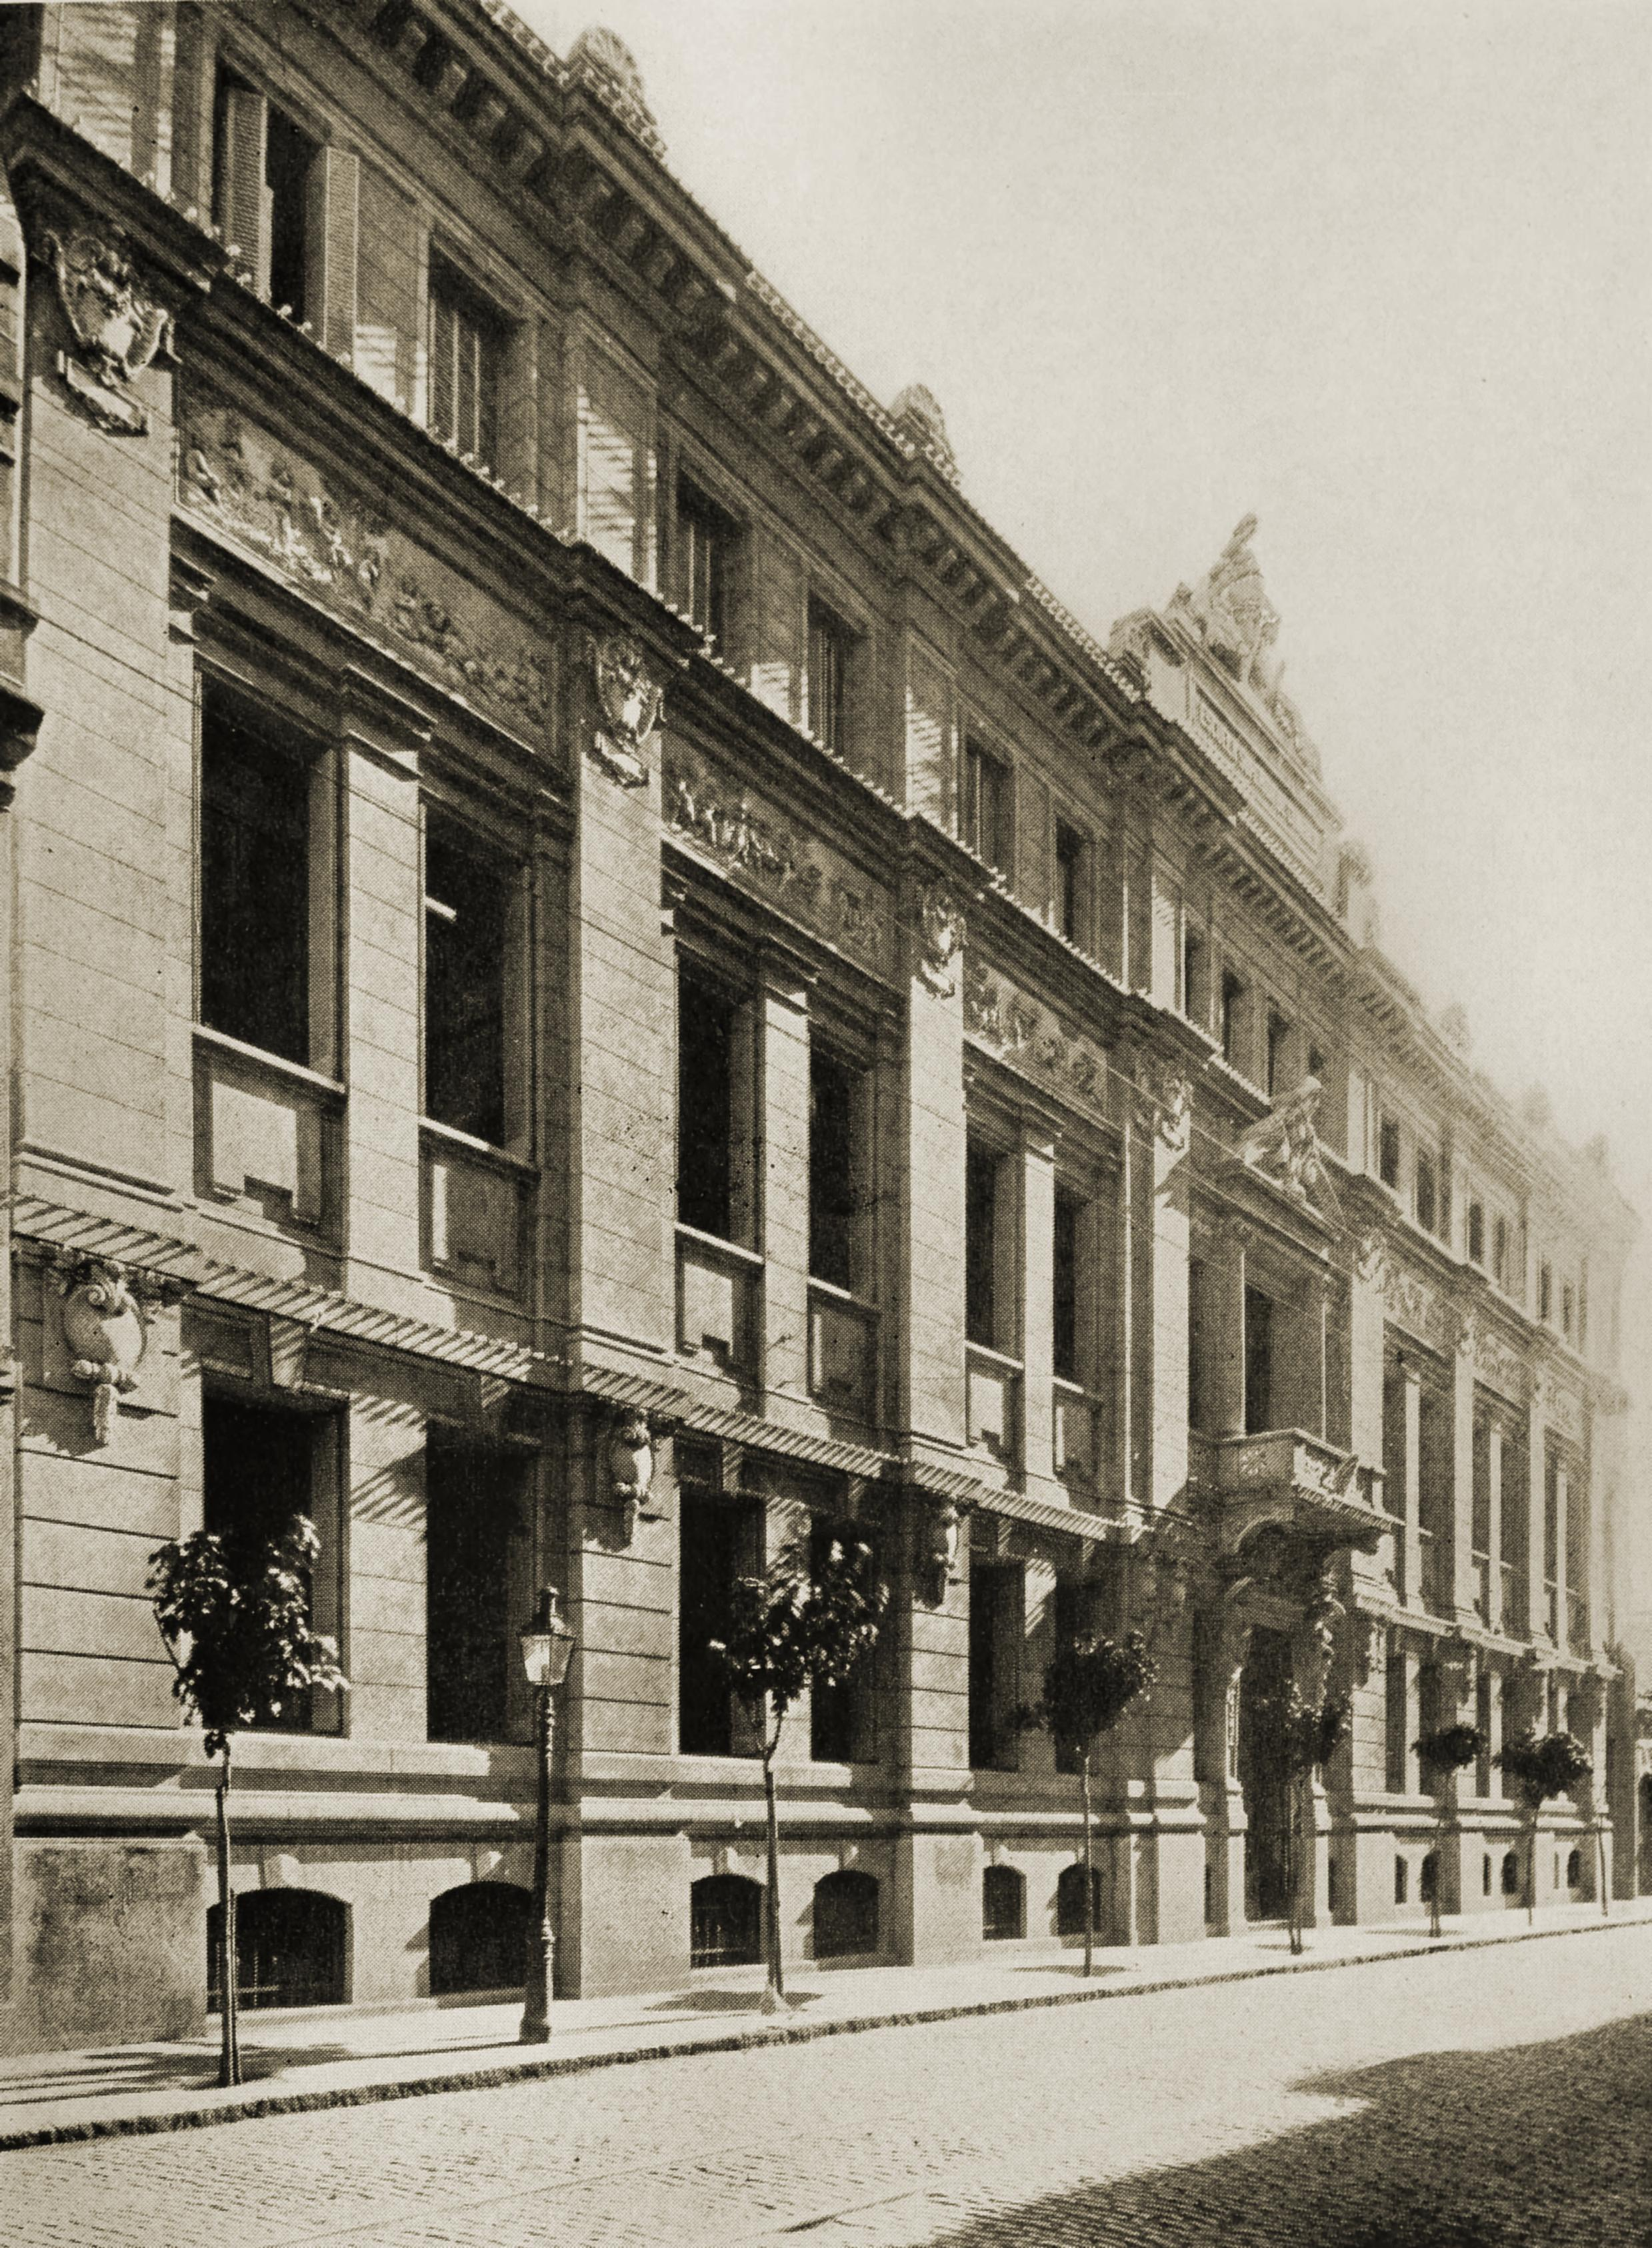 Business College, Buenos Aires, Argentina about 1917